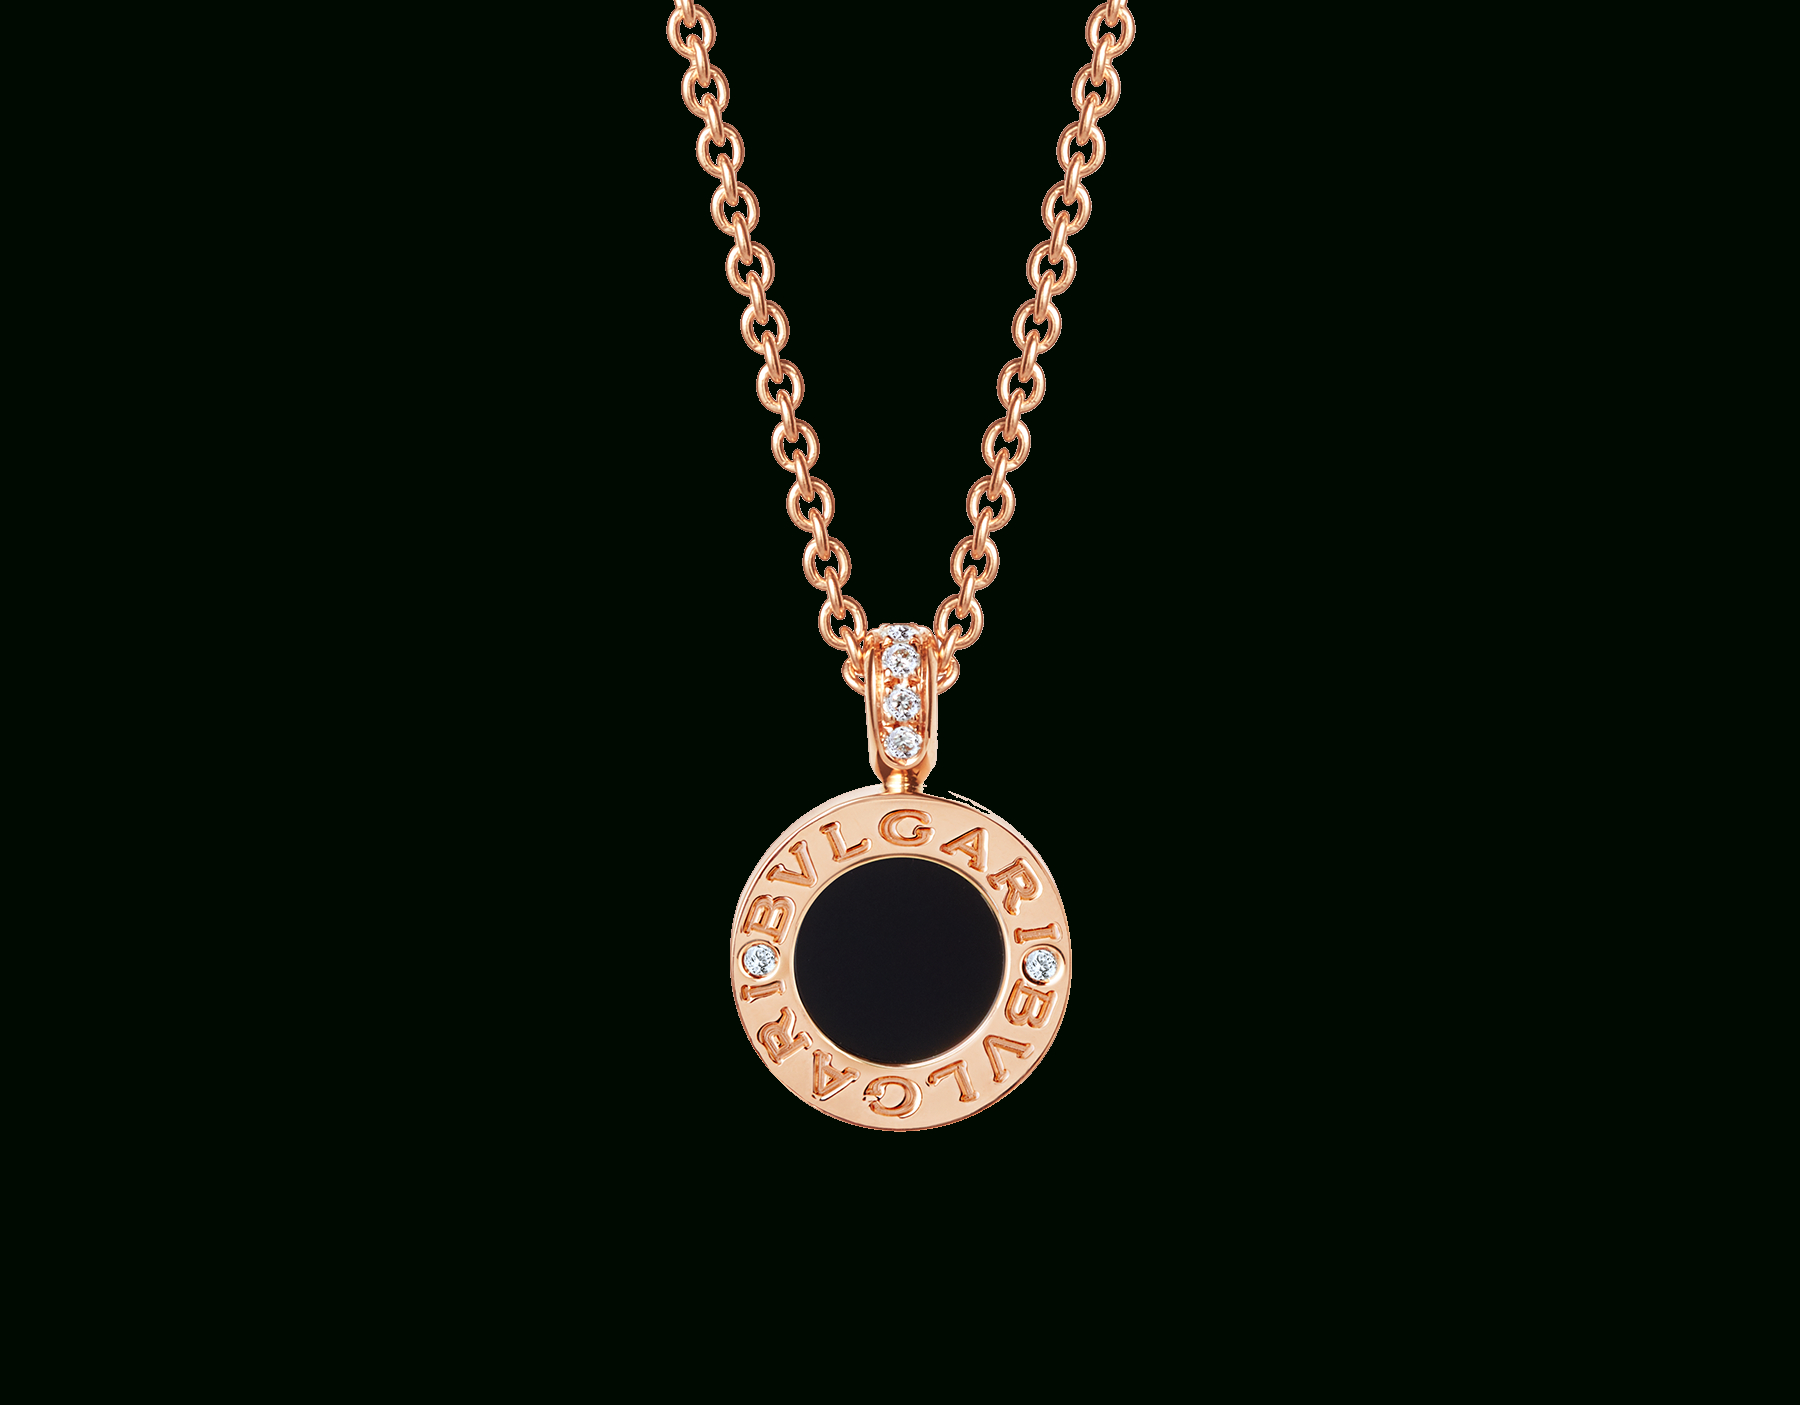 Bvlgari Bvlgari Necklace Regarding Most Up To Date Pavé Star Locket Element Necklaces (Gallery 23 of 25)